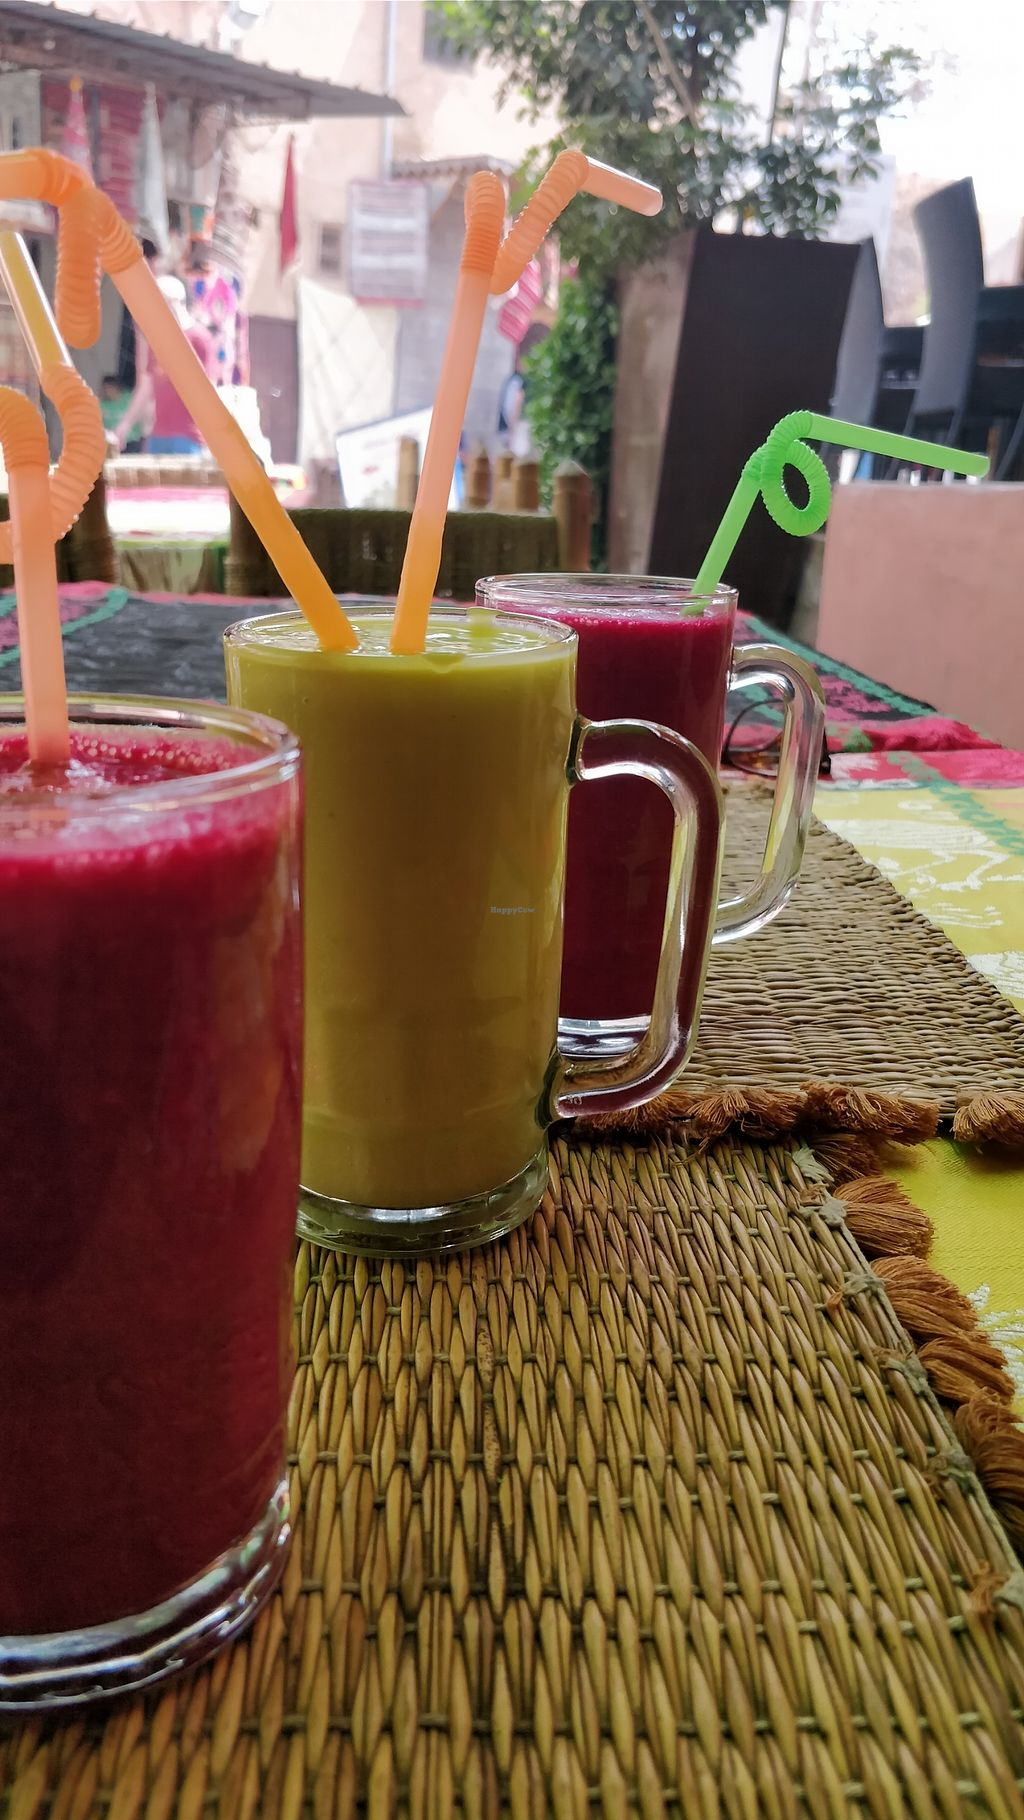 "Photo of Green Vegetarian  by <a href=""/members/profile/IevaR"">IevaR</a> <br/>Beetroot and ginger juice, and avocado juice <br/> March 28, 2018  - <a href='/contact/abuse/image/115951/377480'>Report</a>"